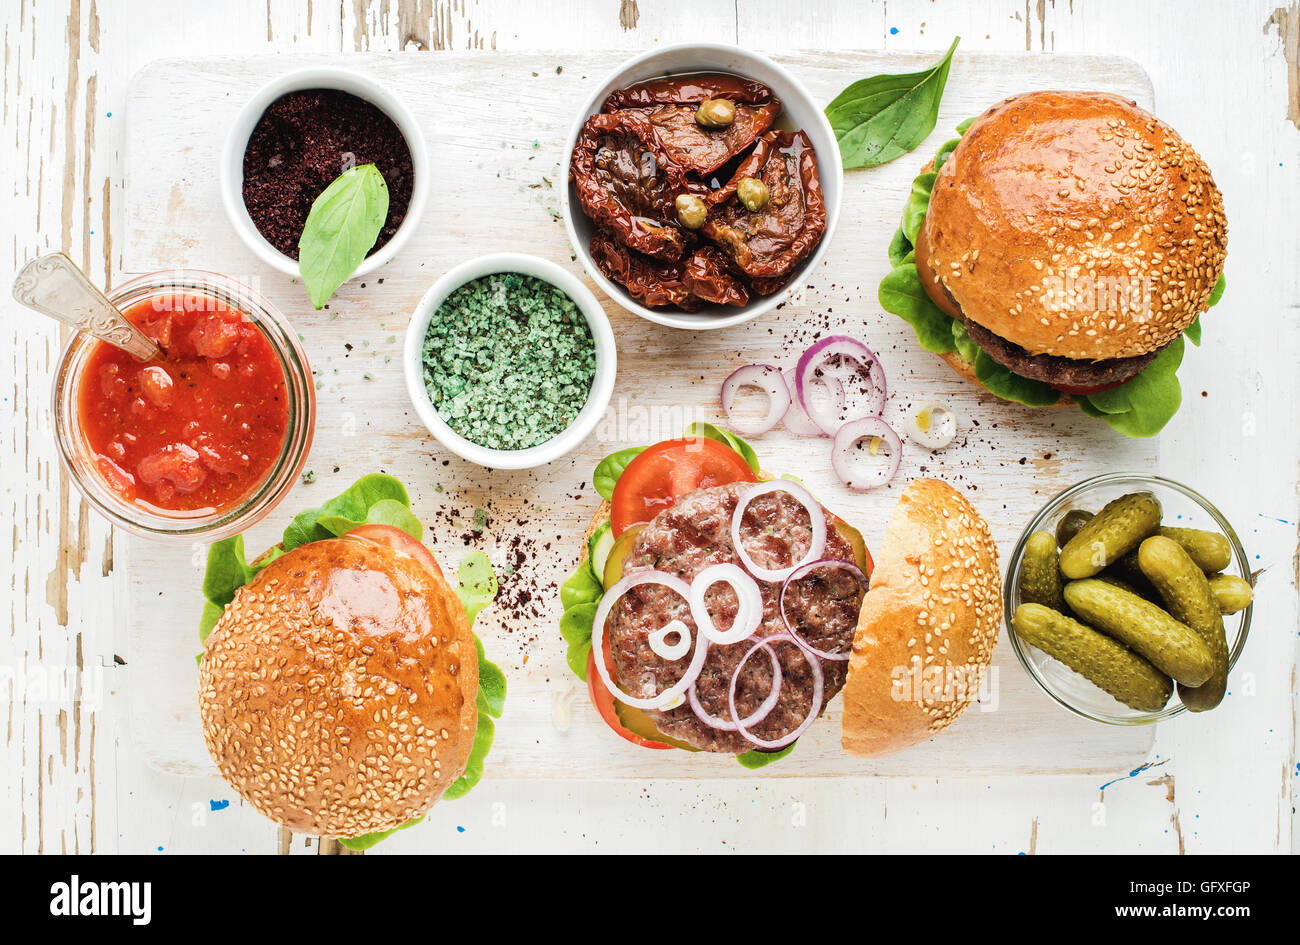 Homemade beef burgers with onion, pickles, vegetables, sun-dried tomatoes, sauce - Stock Image